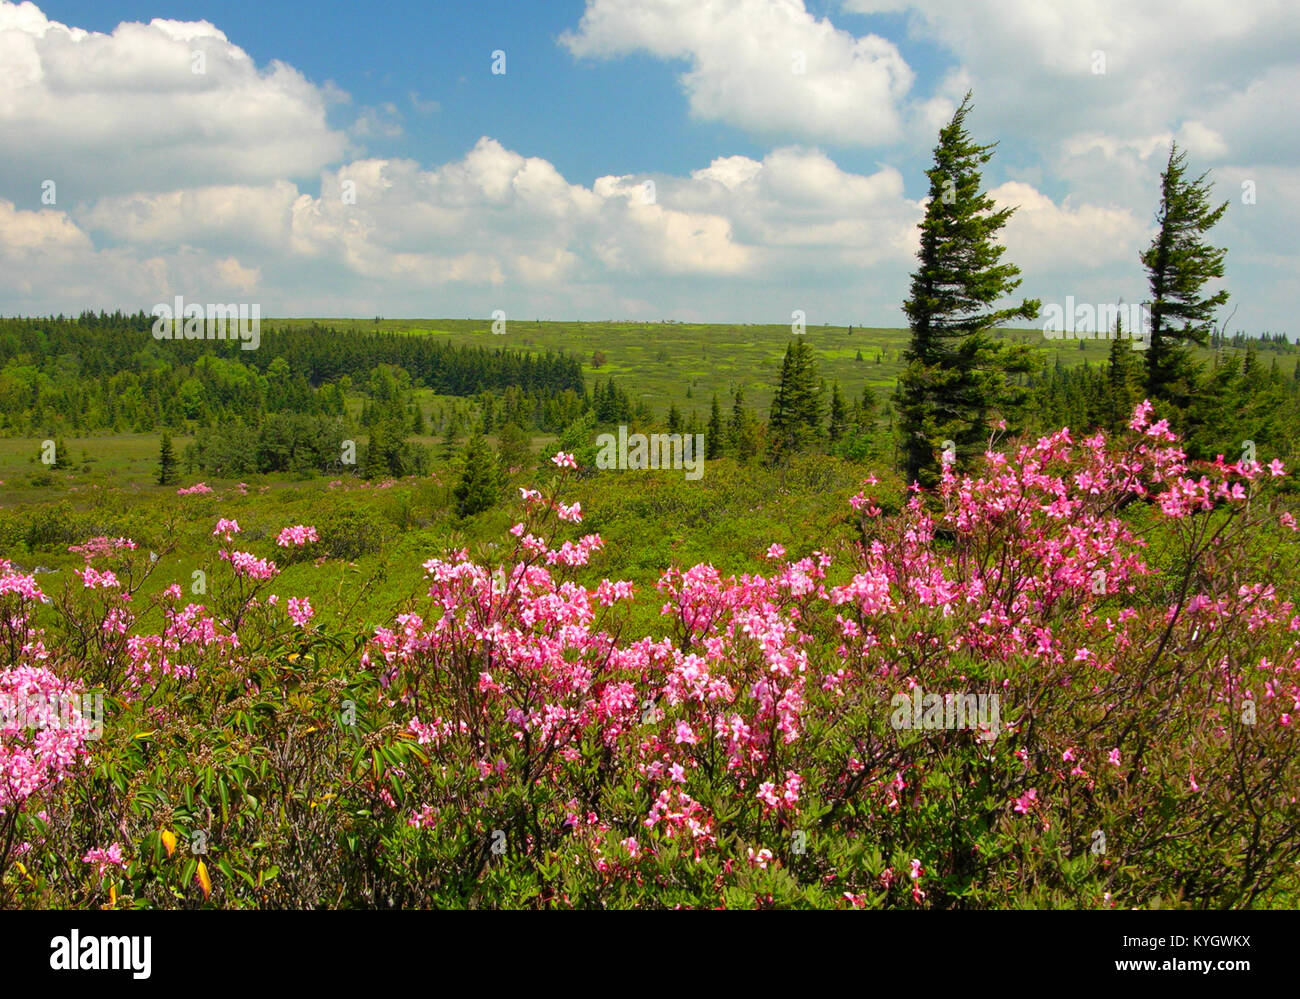 Dolly Sods with pink azalea, West Virginia - Stock Image